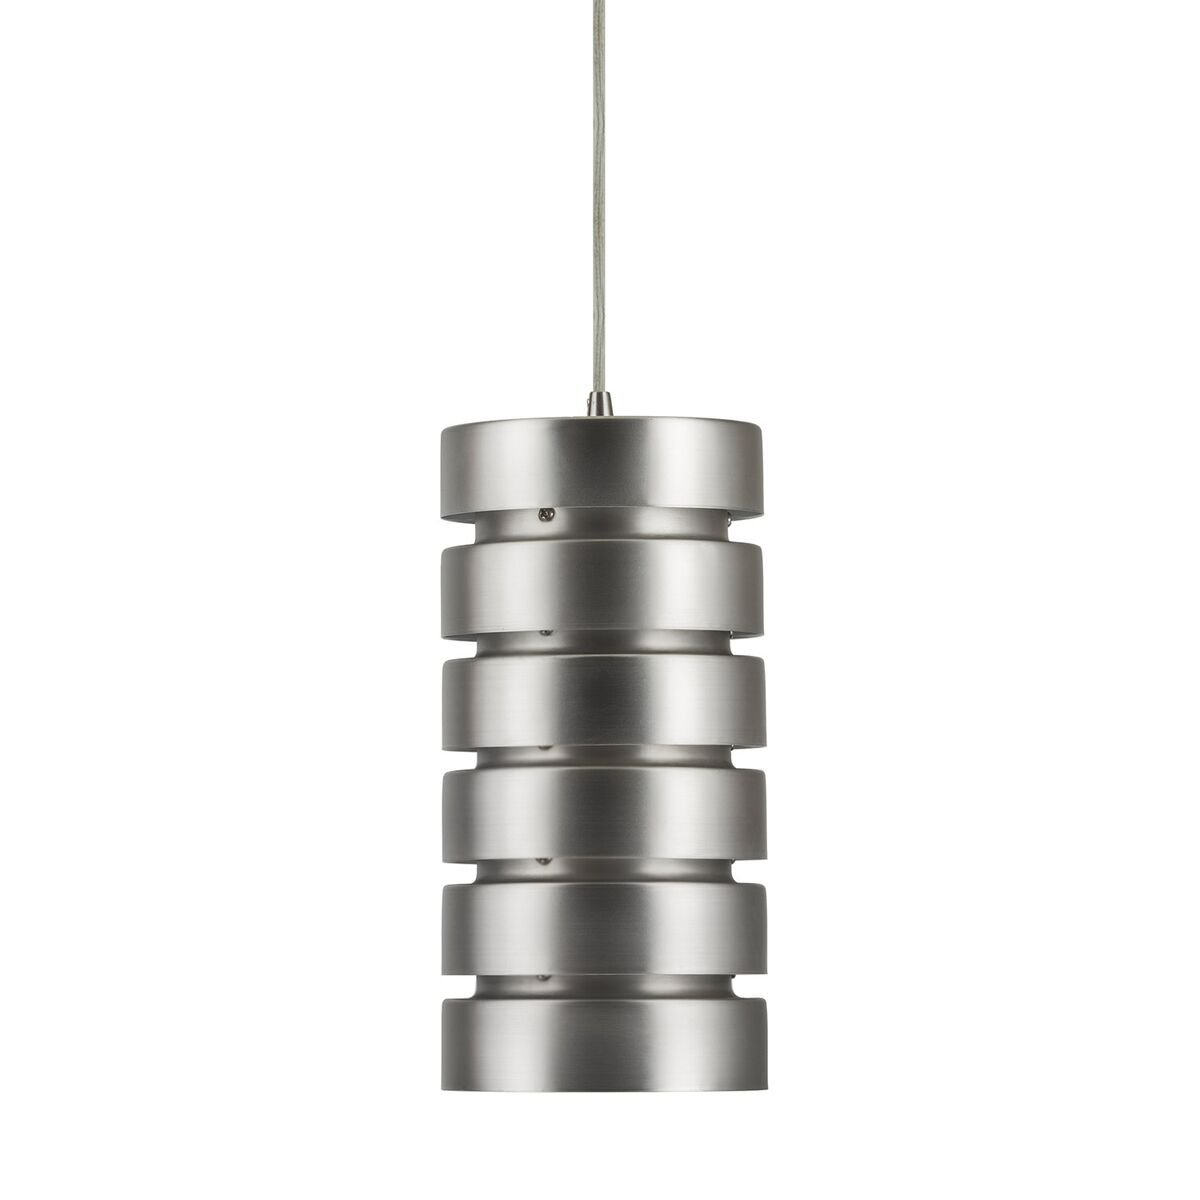 Macchione Modern Hanging Pendant Light - Brushed Nickel Steel- Linea di Liara LL-P518